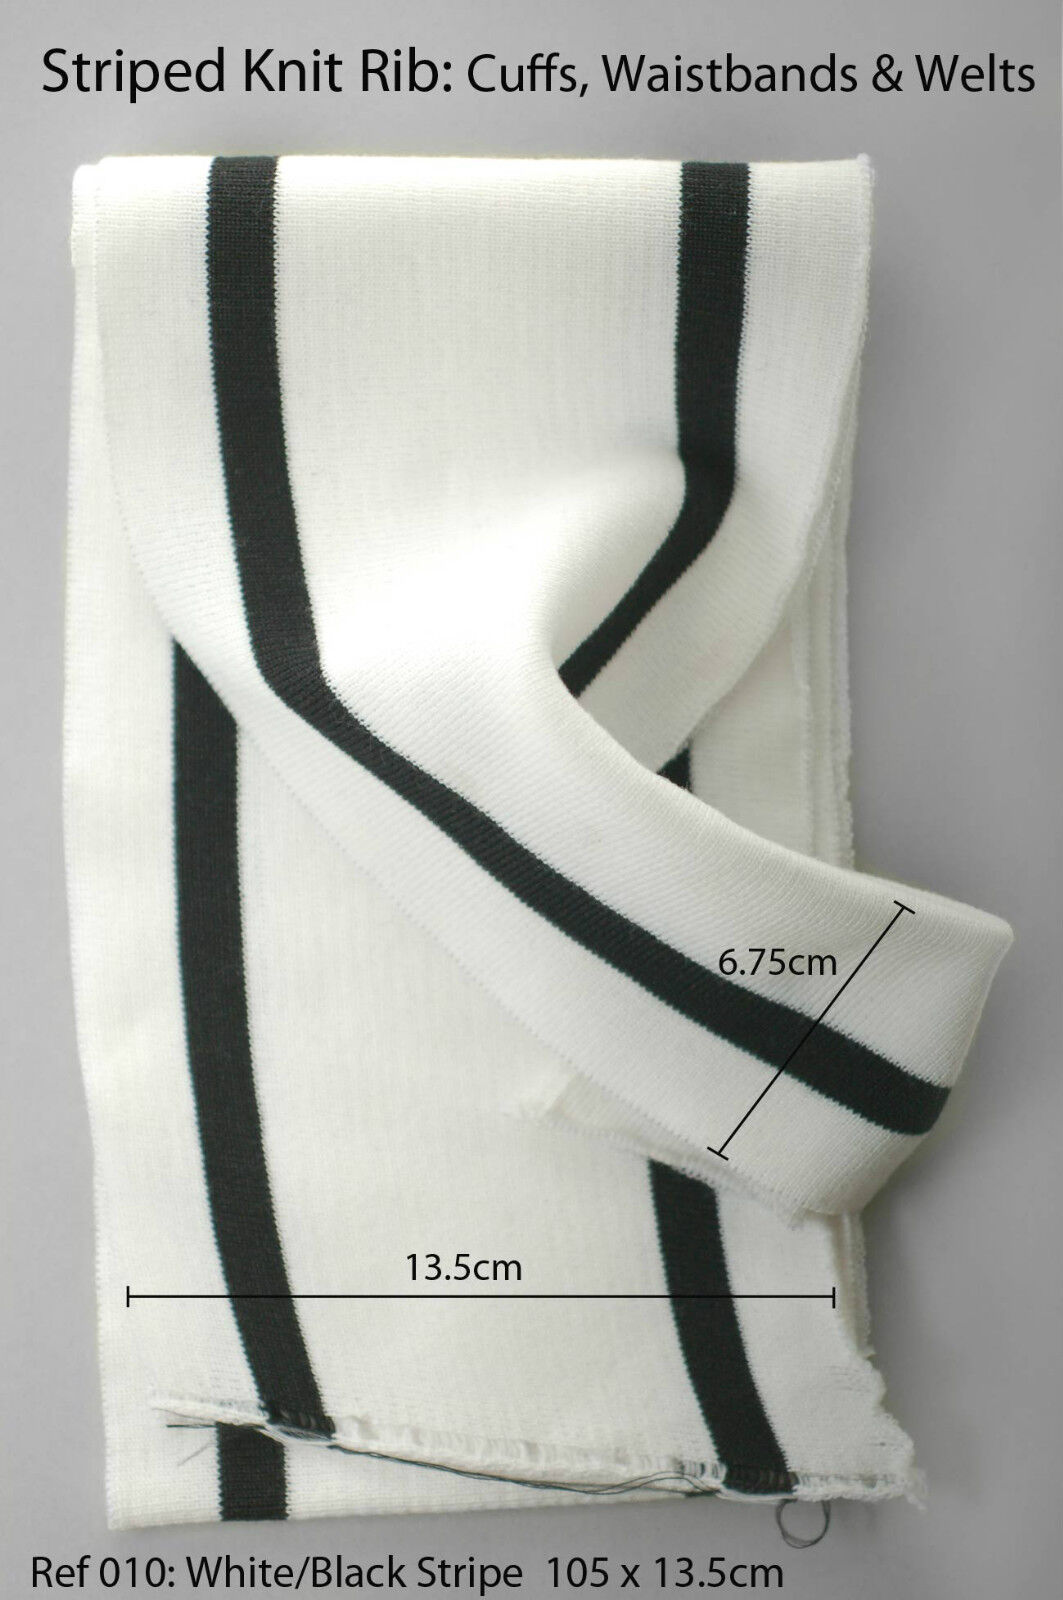 Neotrims Knit Rib Cuff Waistband Fabric Trimming Bomber Jackets Panels Wholesale